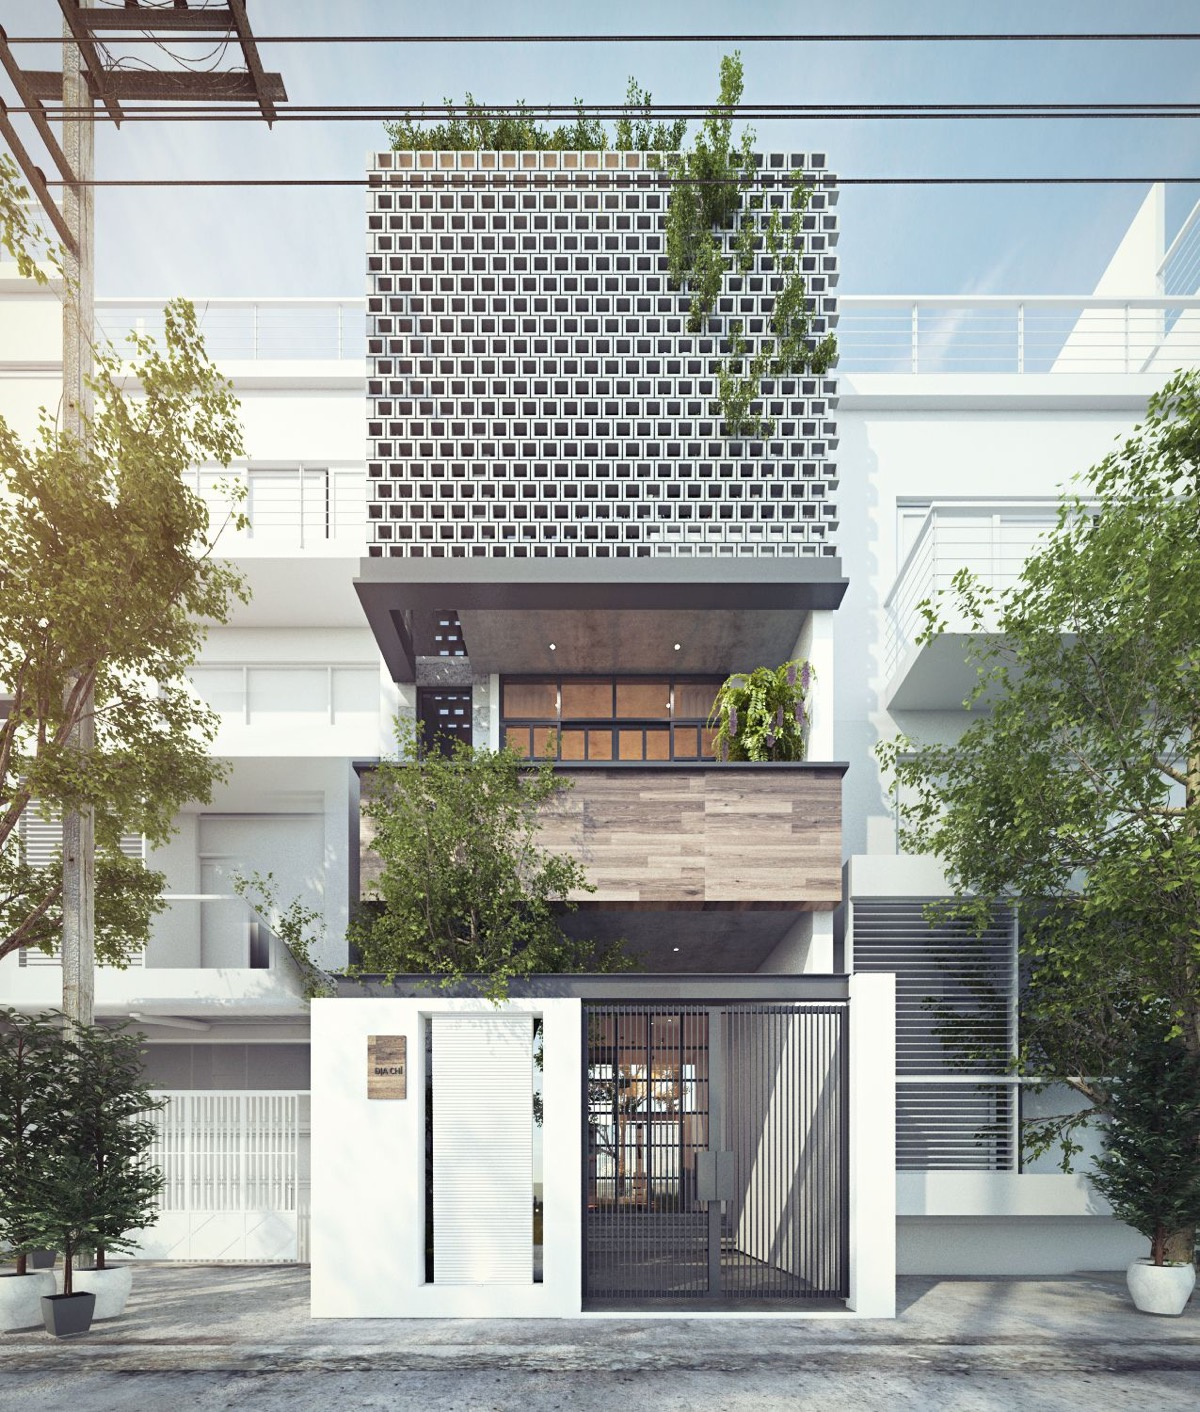 50 Narrow Lot Houses That Transform A Skinny Exterior Into Something Special images 22